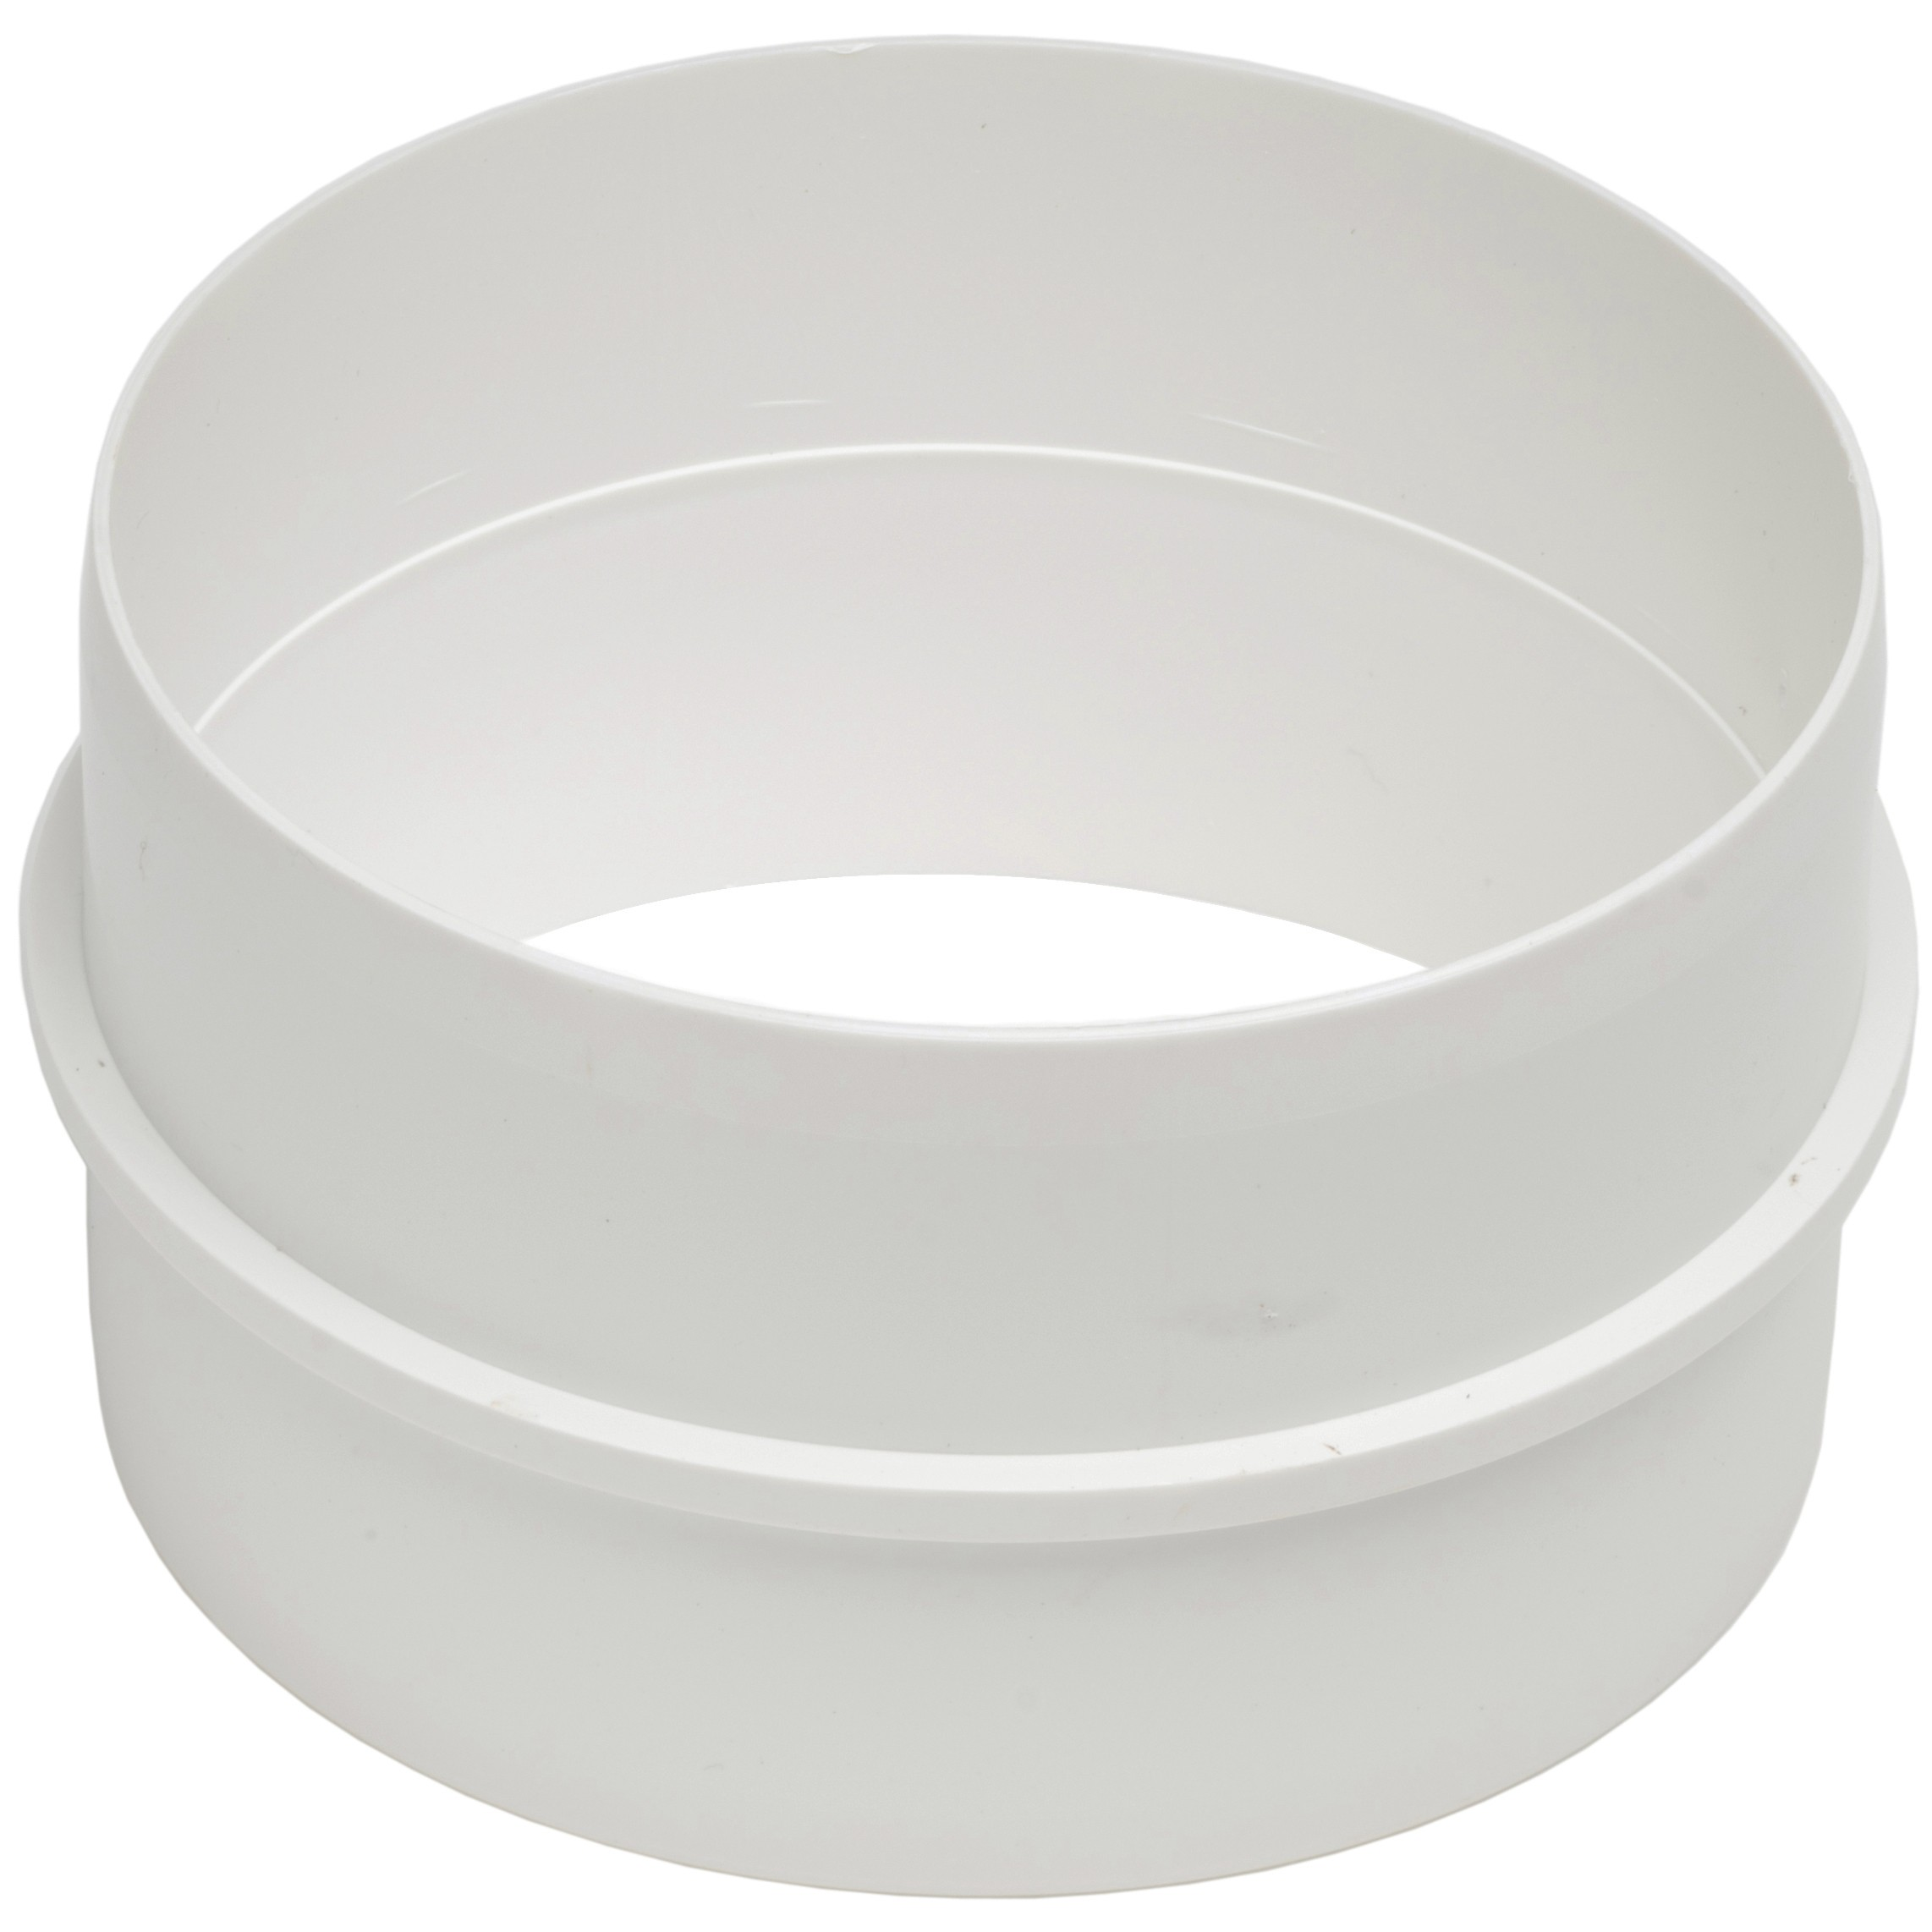 Manrose Round Ducting Pipe Connector - White, 150mm